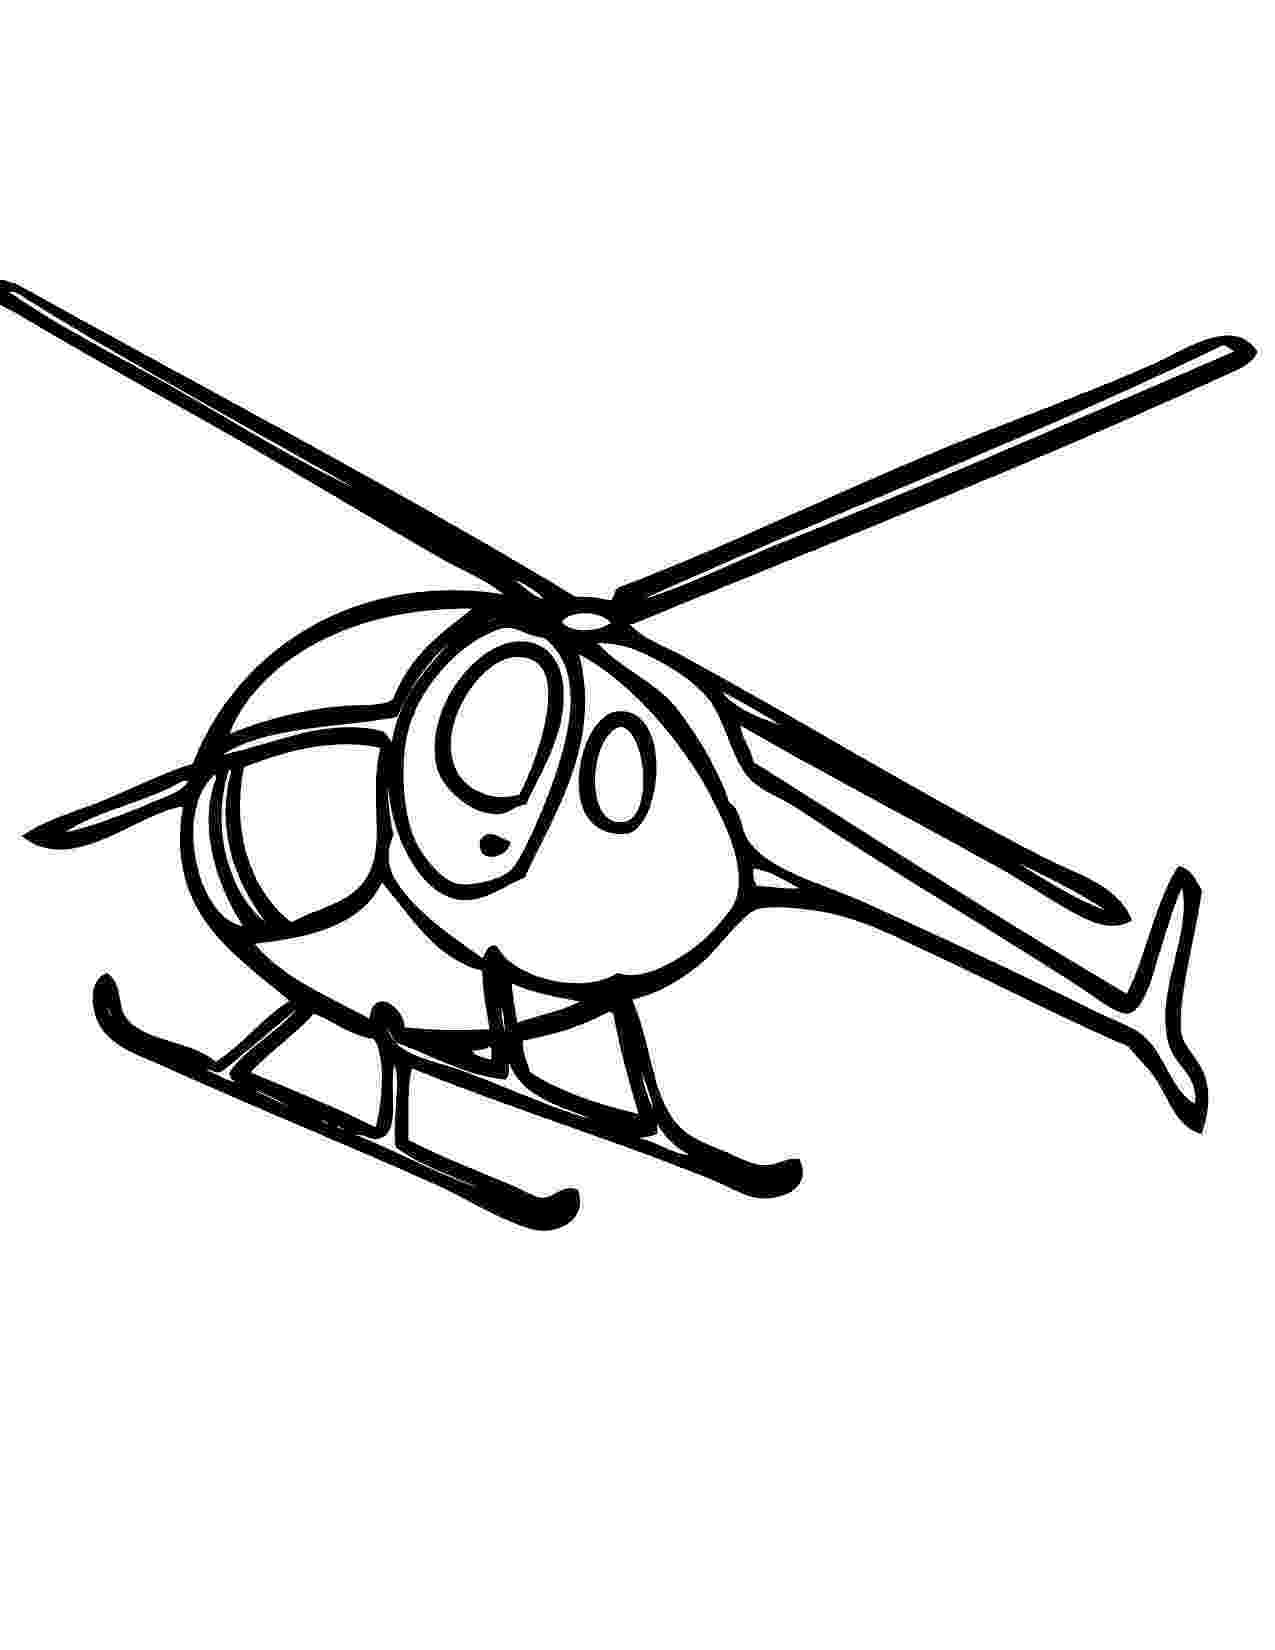 helicopter colouring helicopter coloring pages to download and print for free helicopter colouring